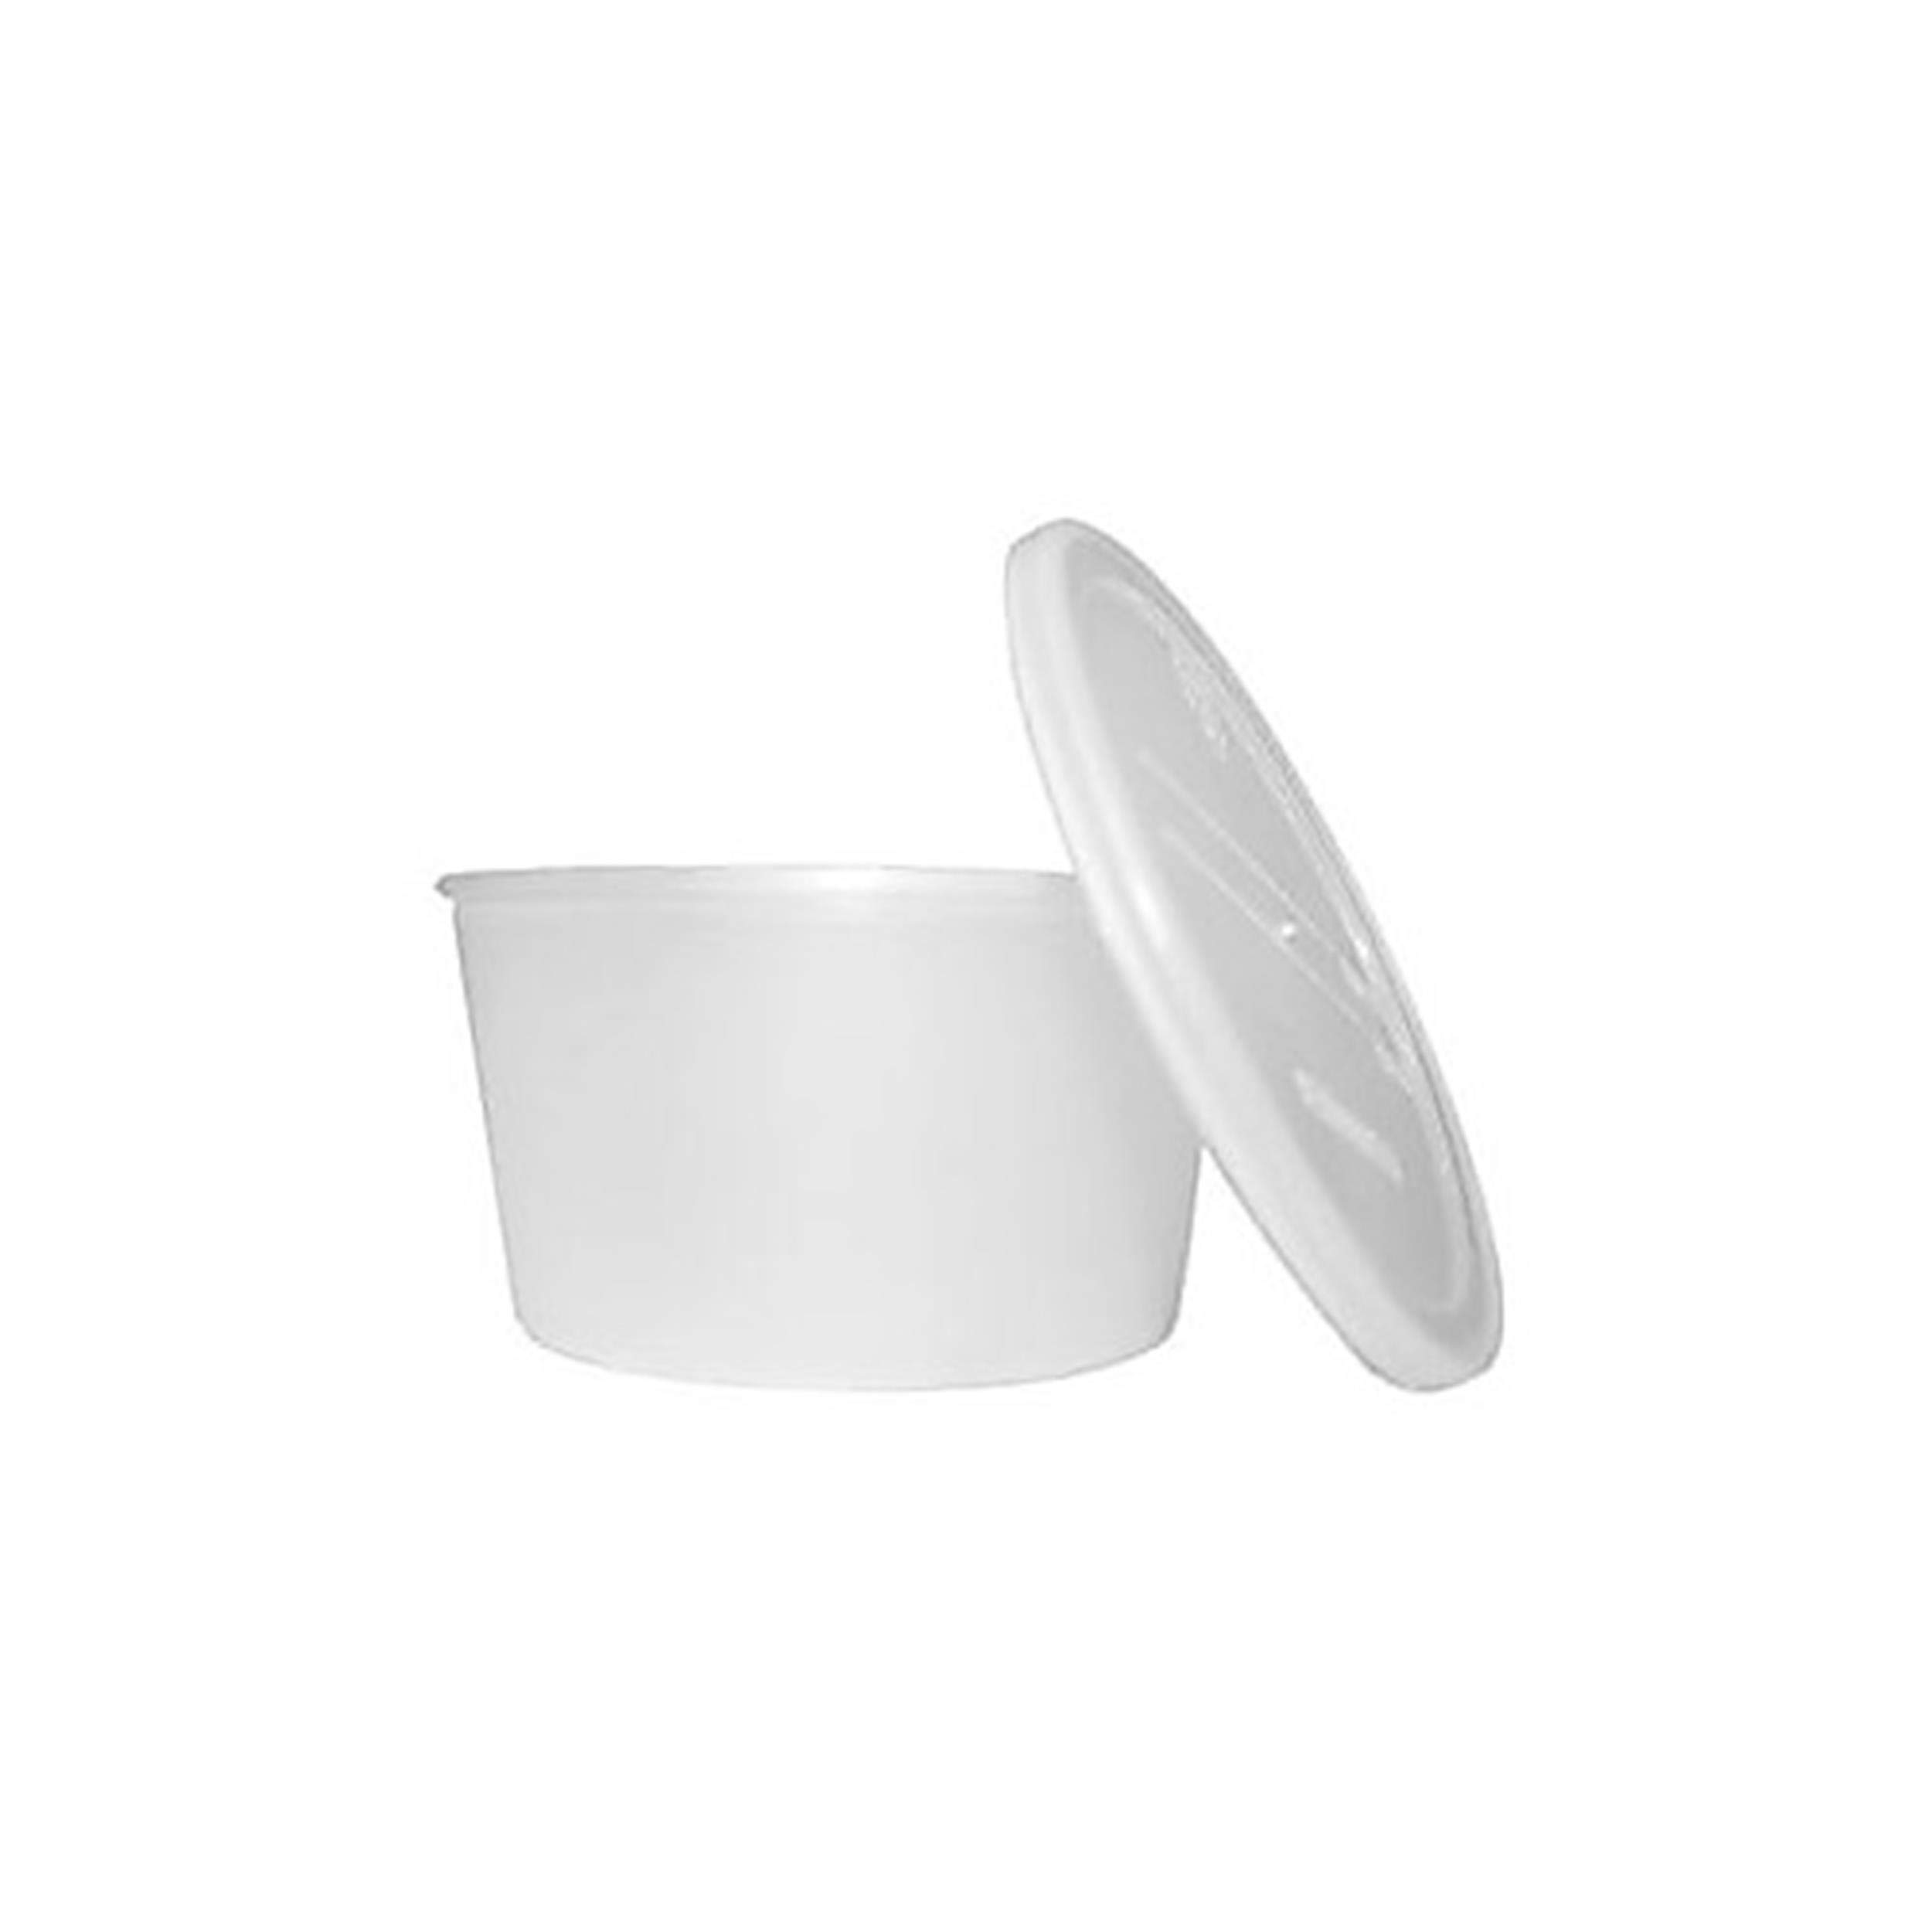 Dukal DUK DCPC Dawnmist Denture Cup with Caps, Translucent (Pack of 250) by Dukal